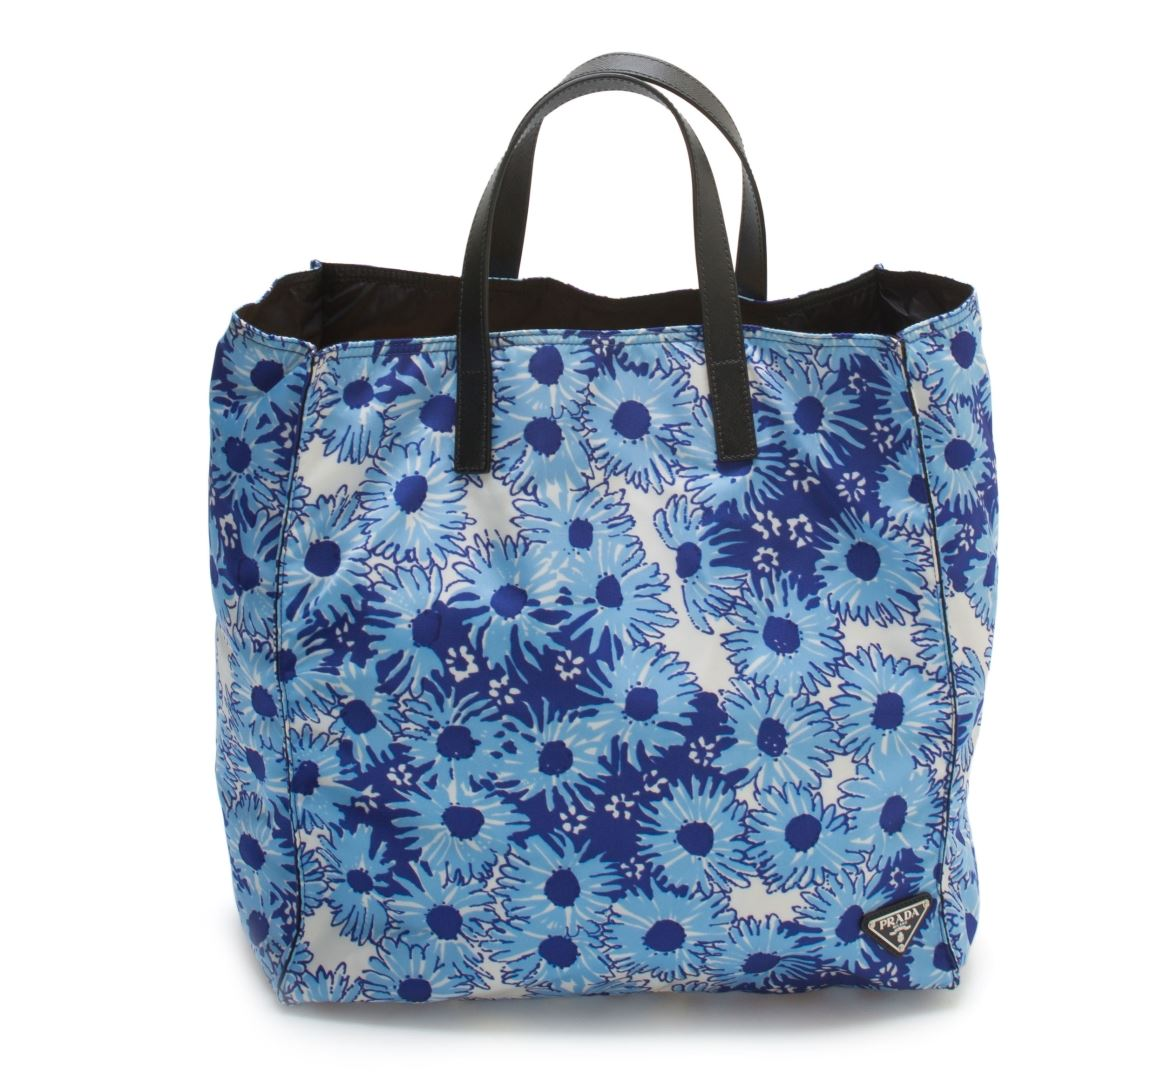 Prada Blue Floral Nylon Tote Bag